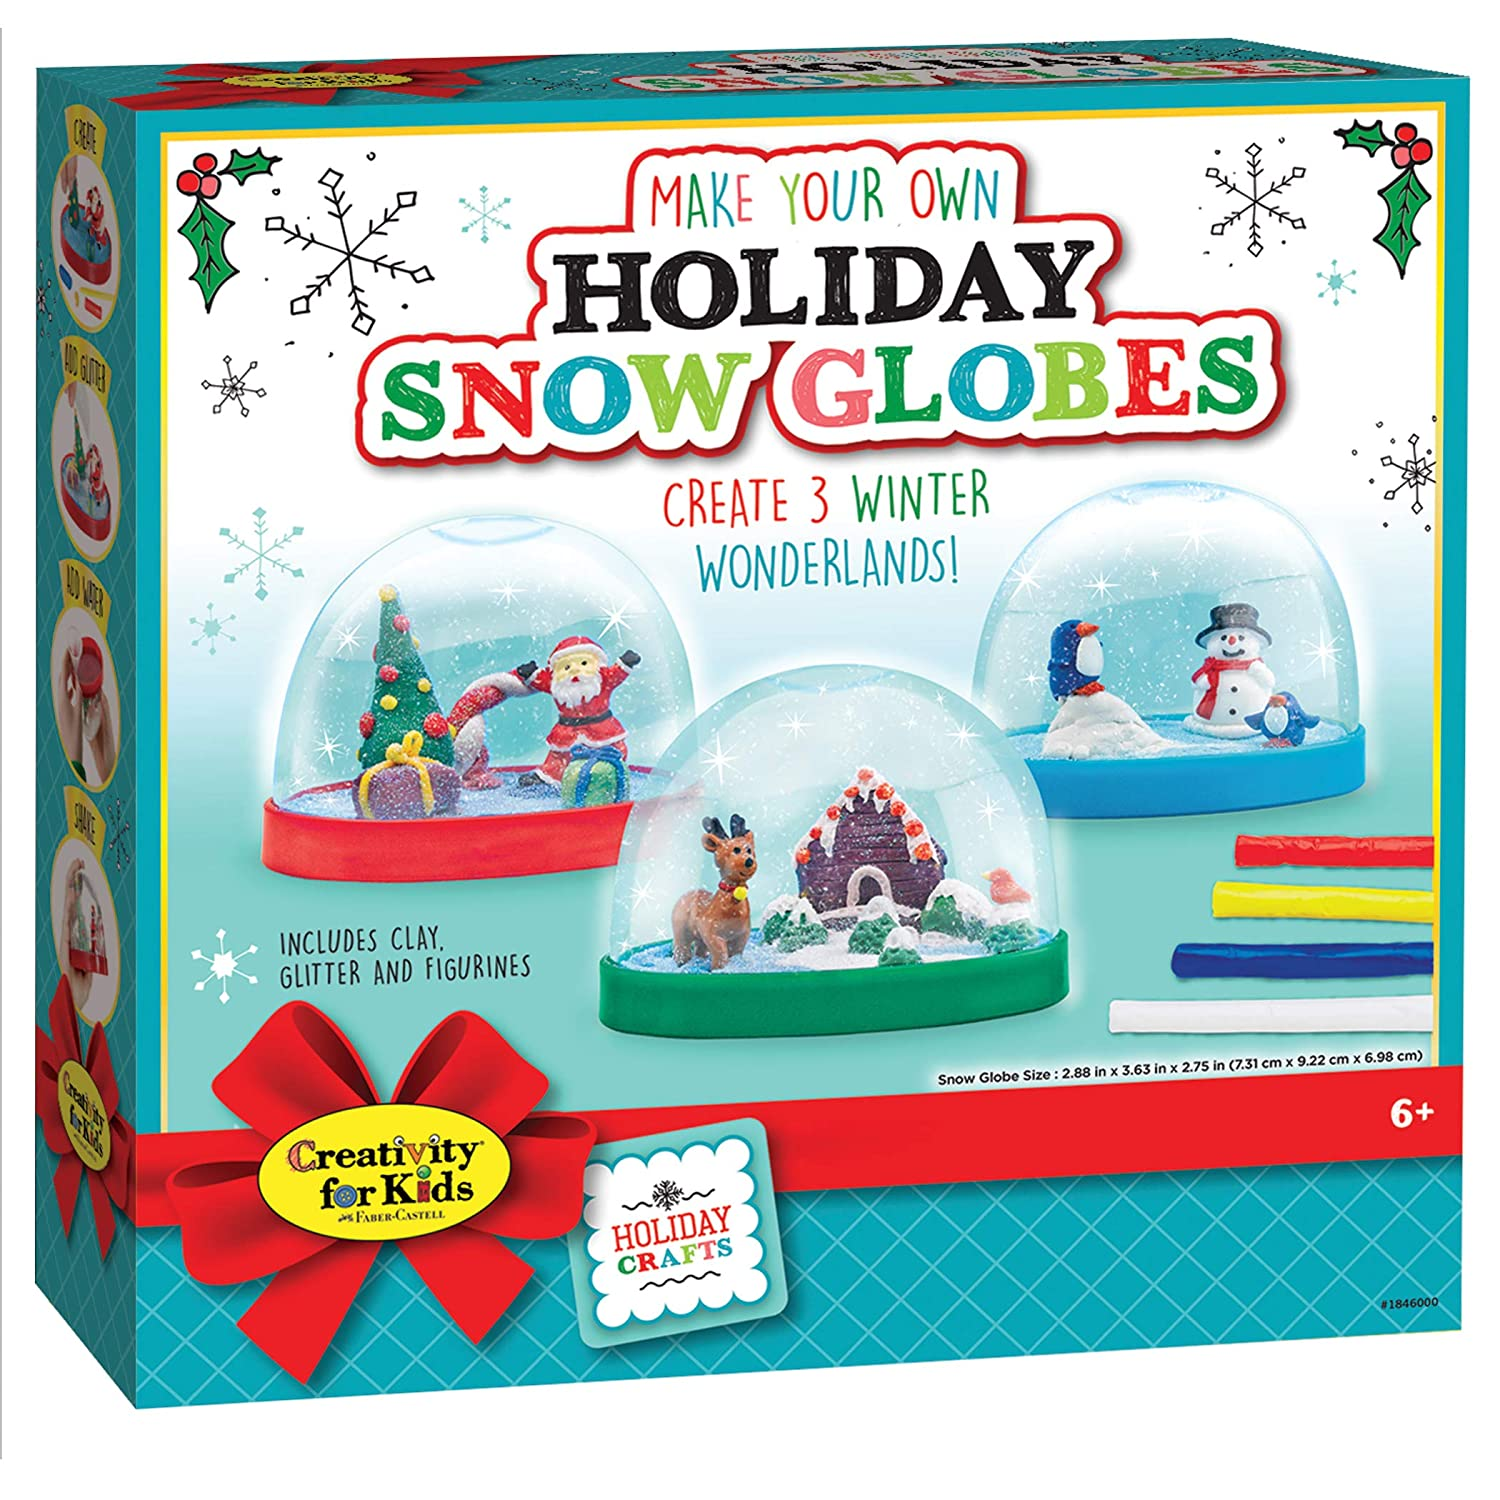 Creativity for Kids 1846000 Creativity For Kids Holiday Snow globes - Makes 3 Christmas Snow globes for Kids  New Packaging